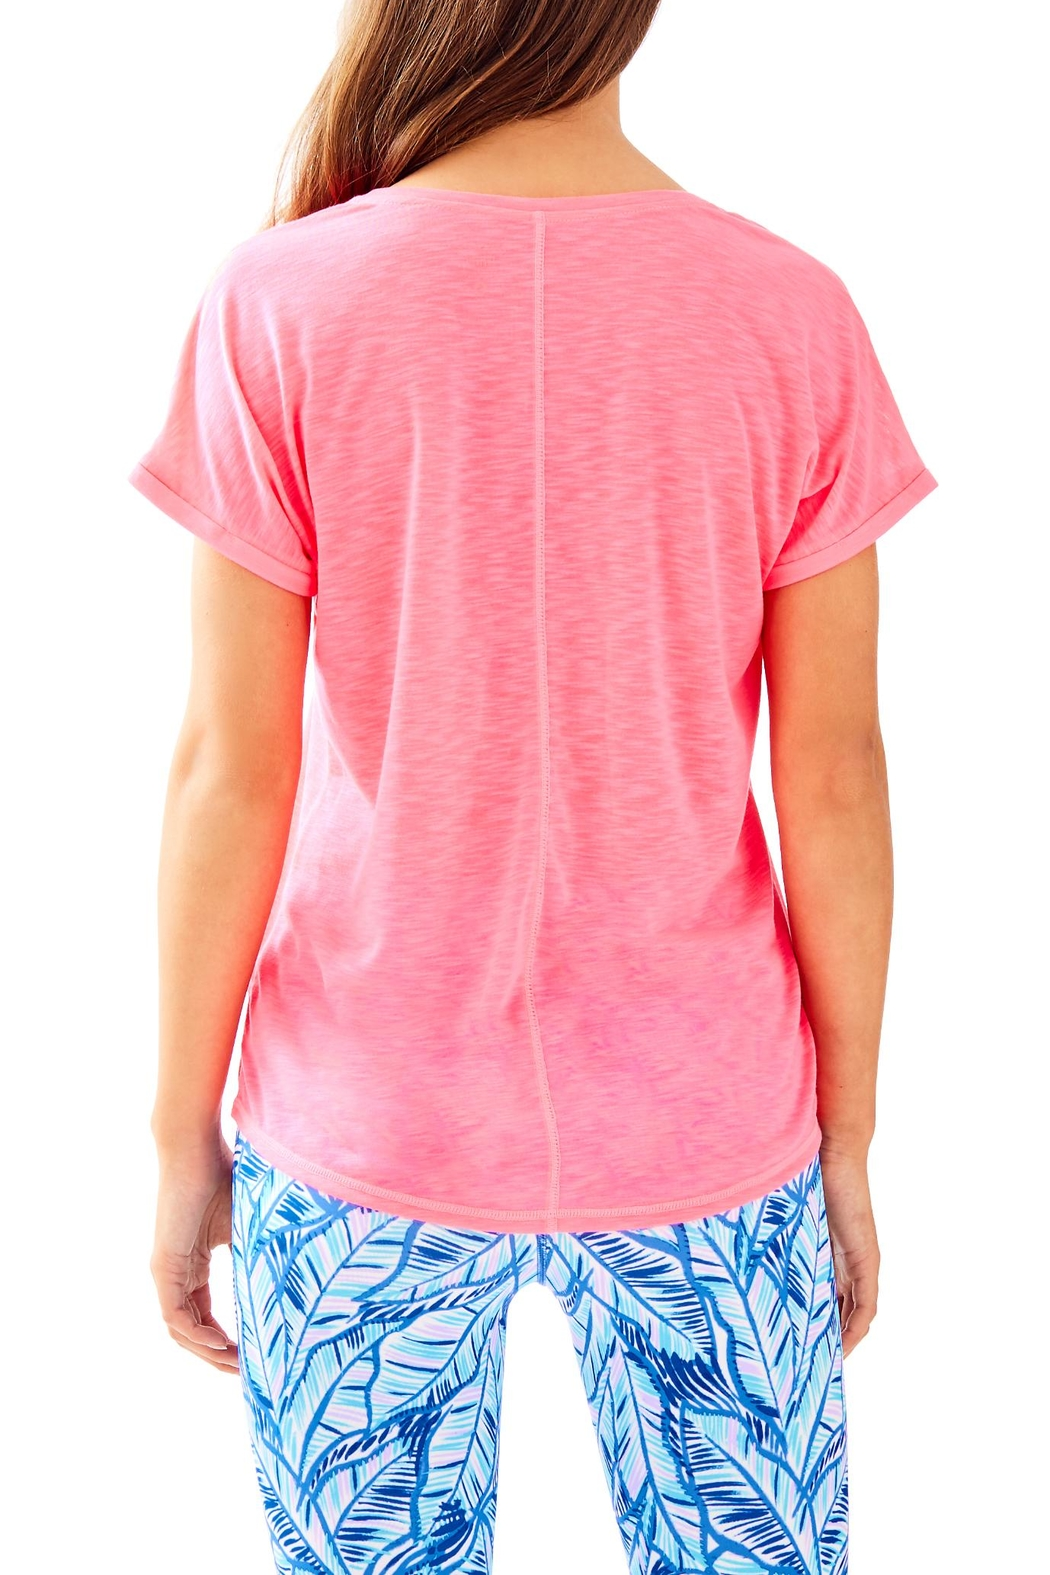 Lilly Pulitzer Luxletic Bryana Tee - Front Full Image